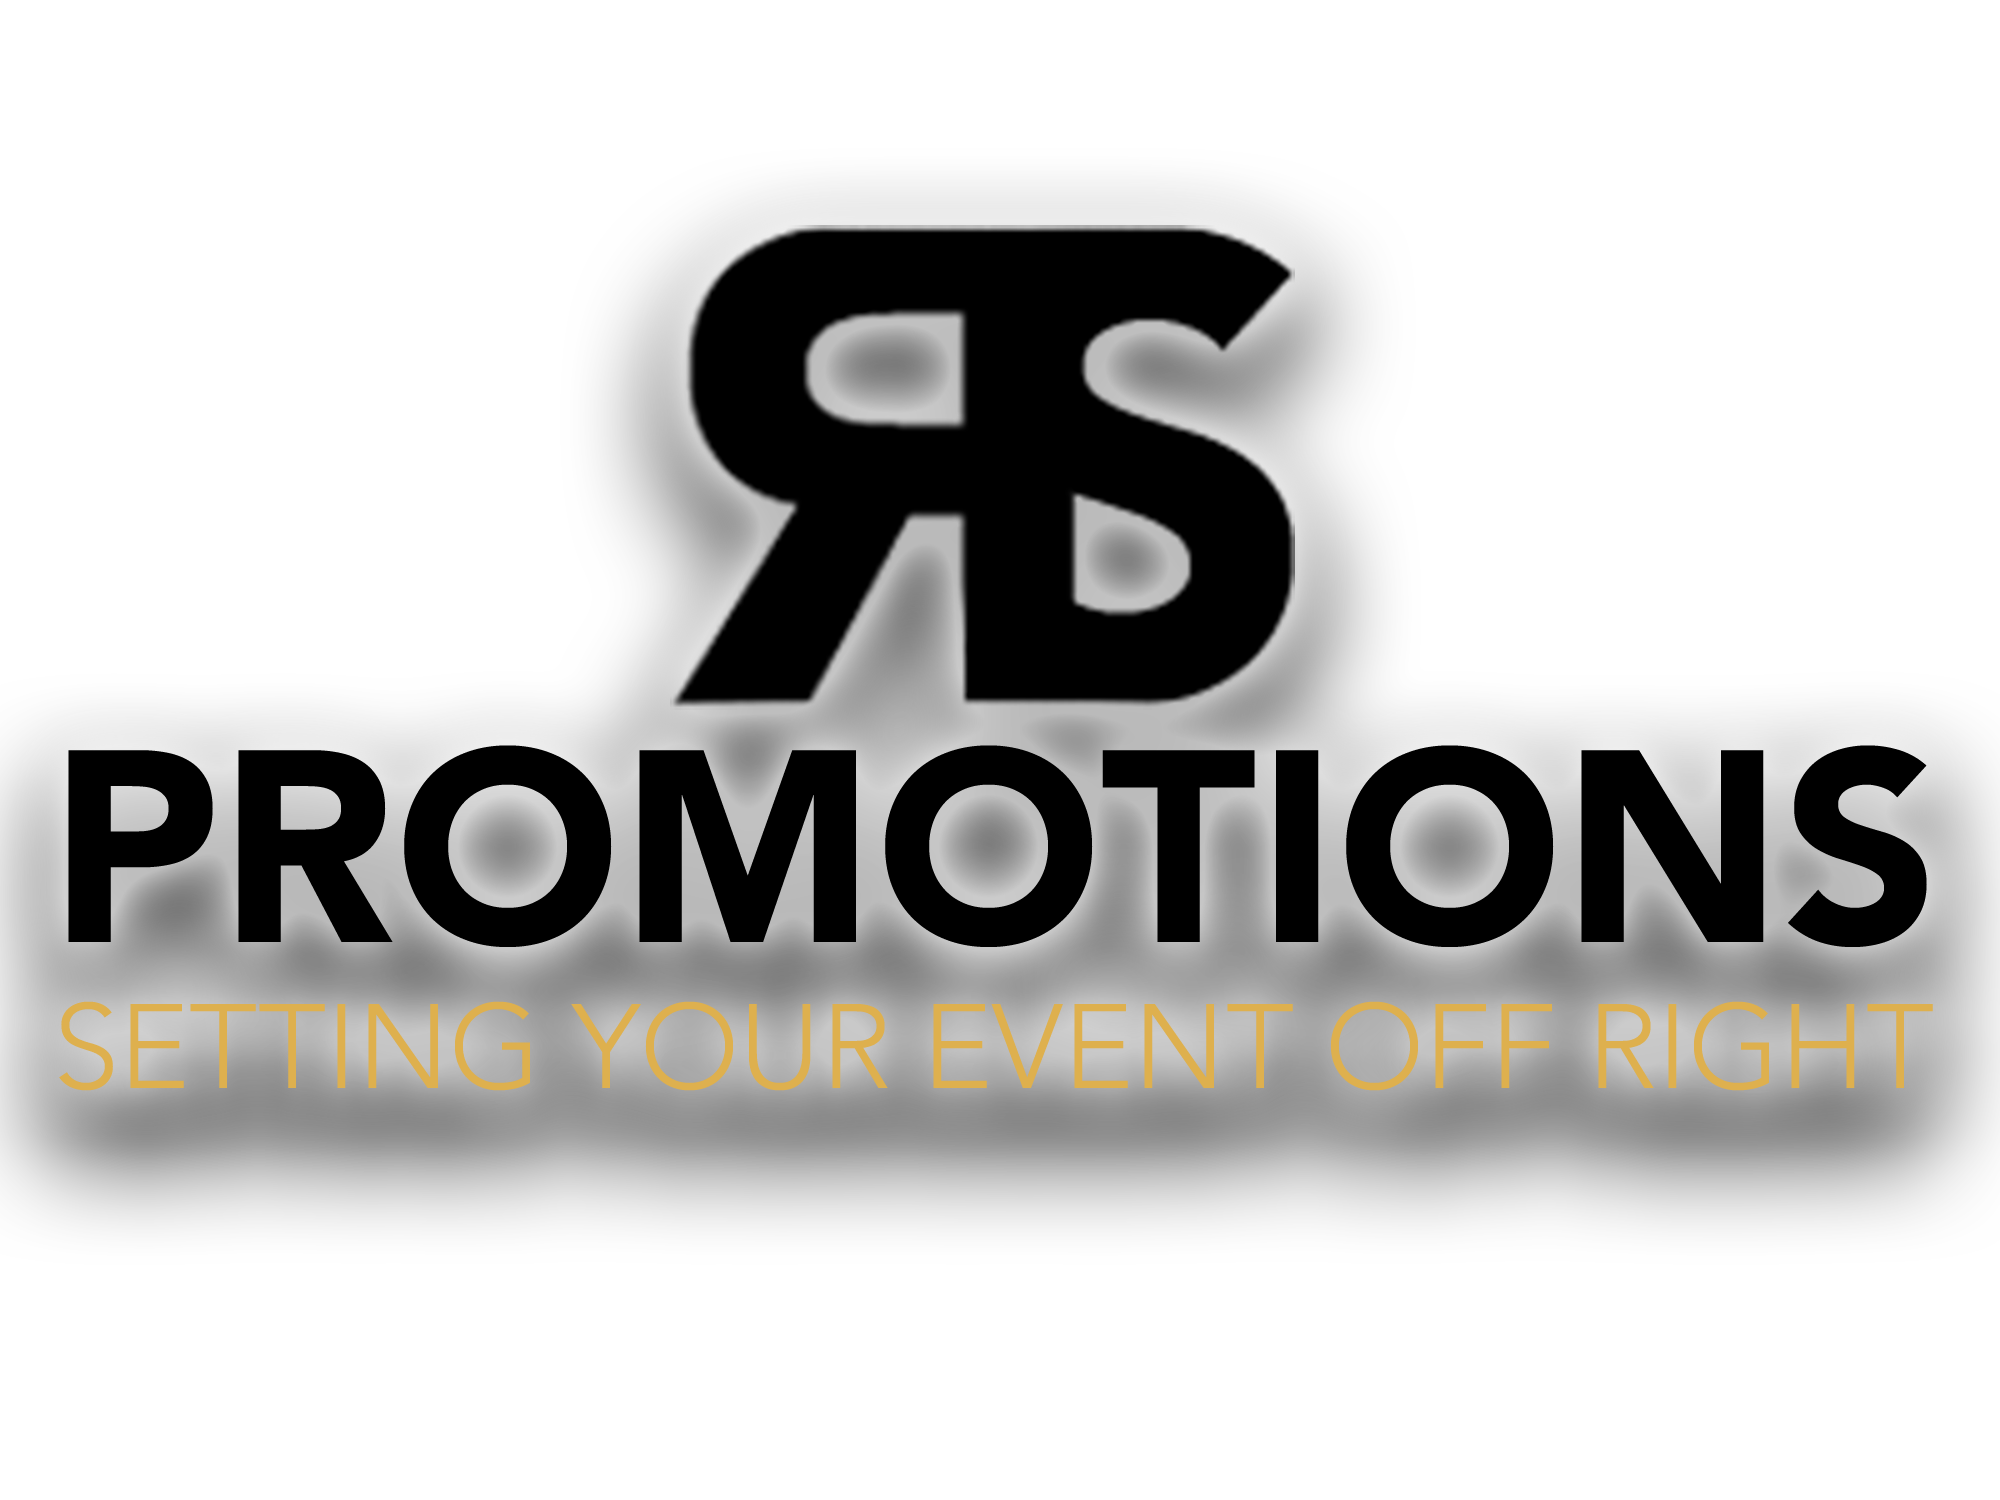 RS Promotions